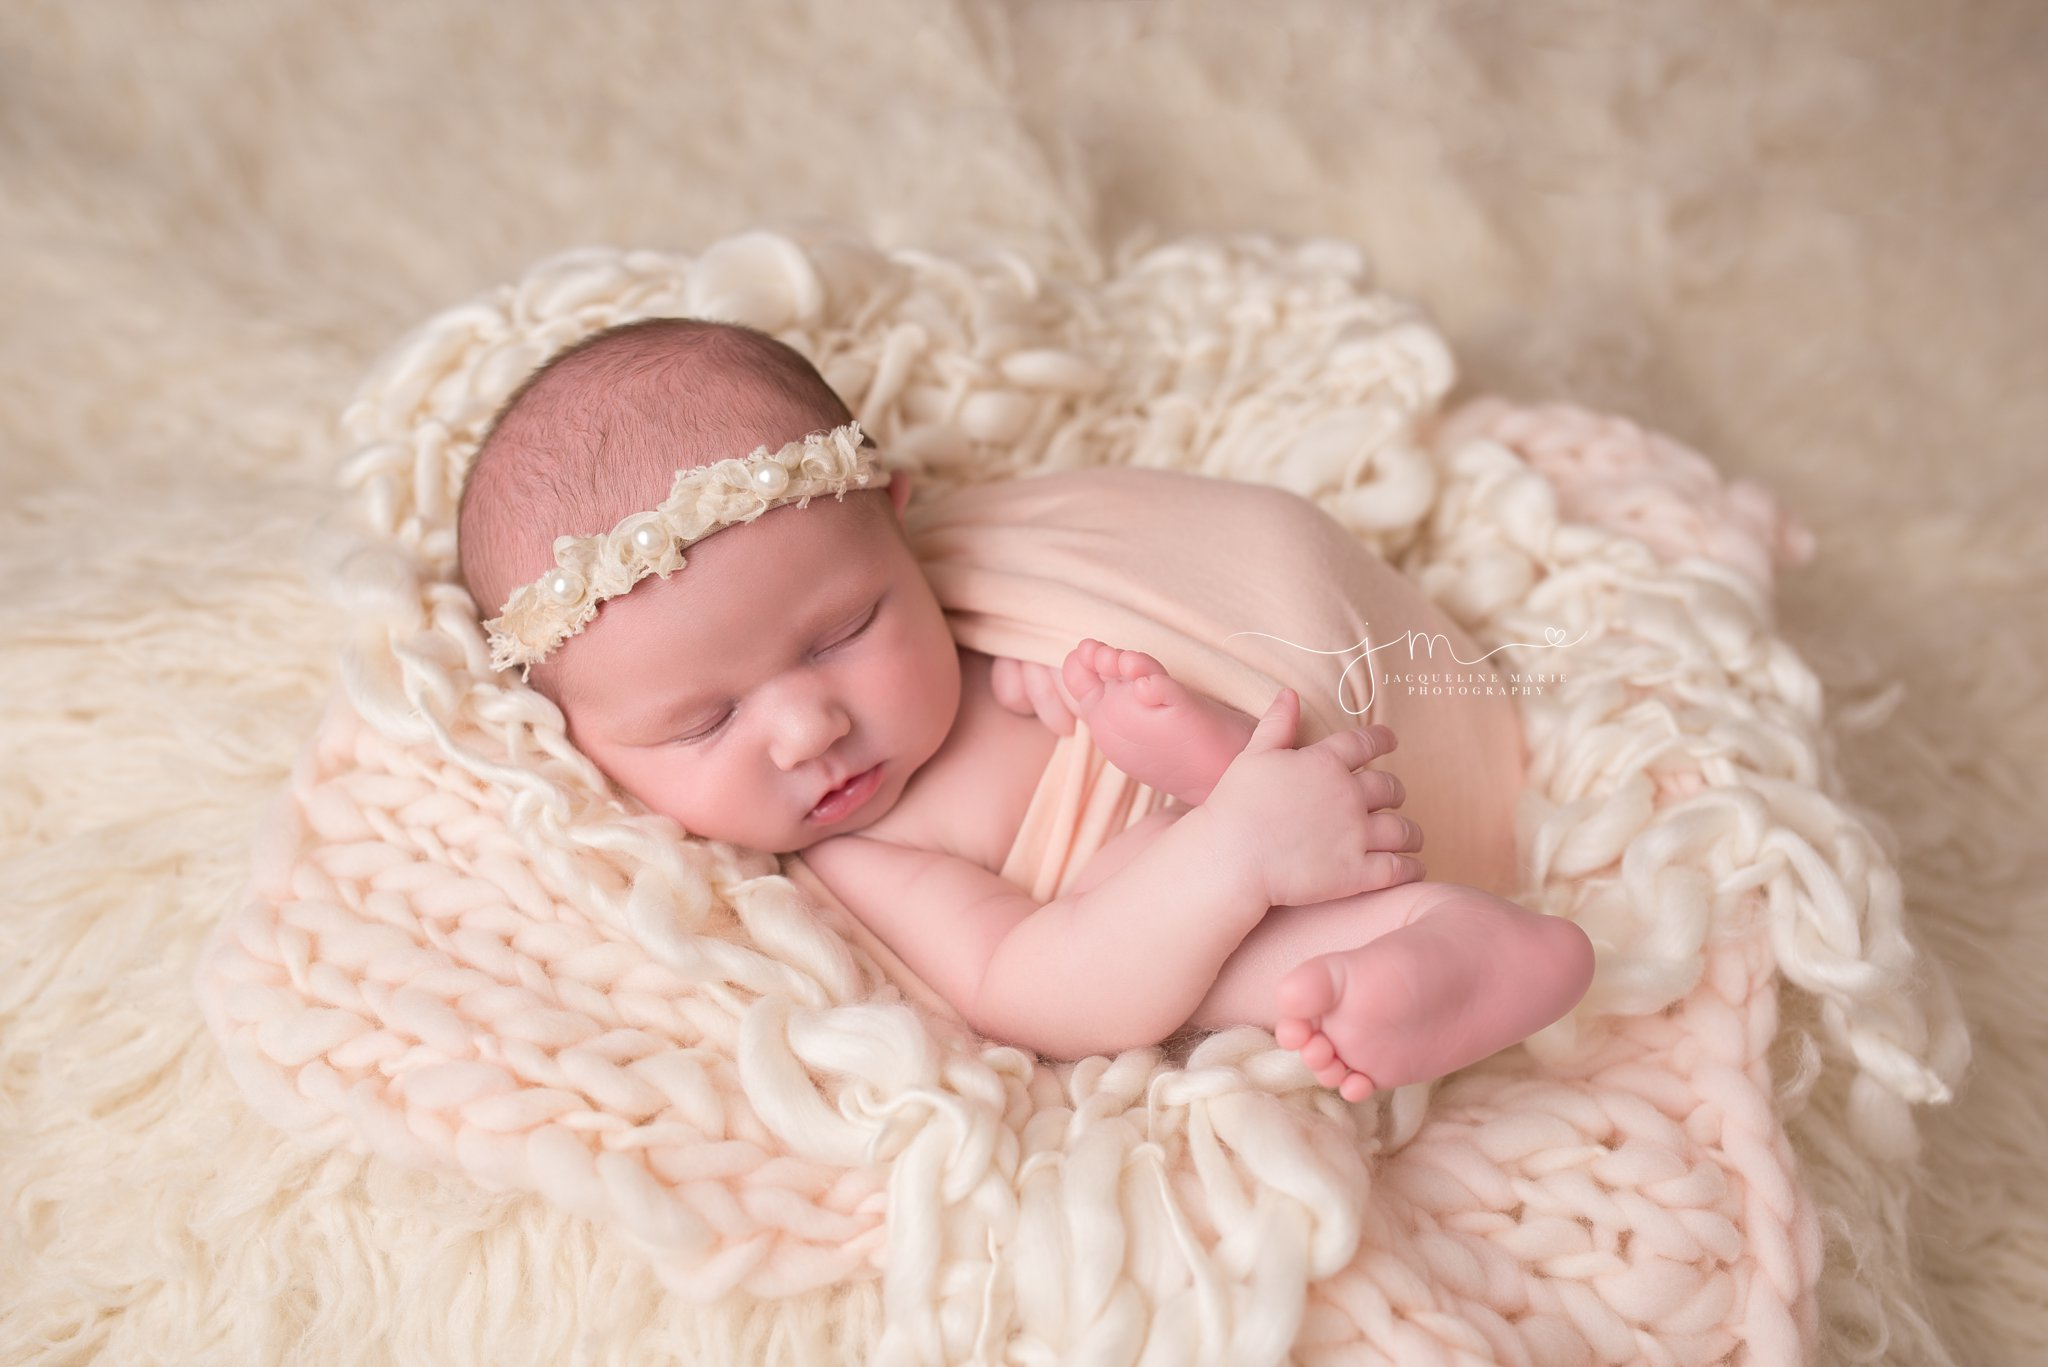 Columbus Ohio newborn baby featured in pink wrap and pearl headband at Jacqueline Marie Photography studio